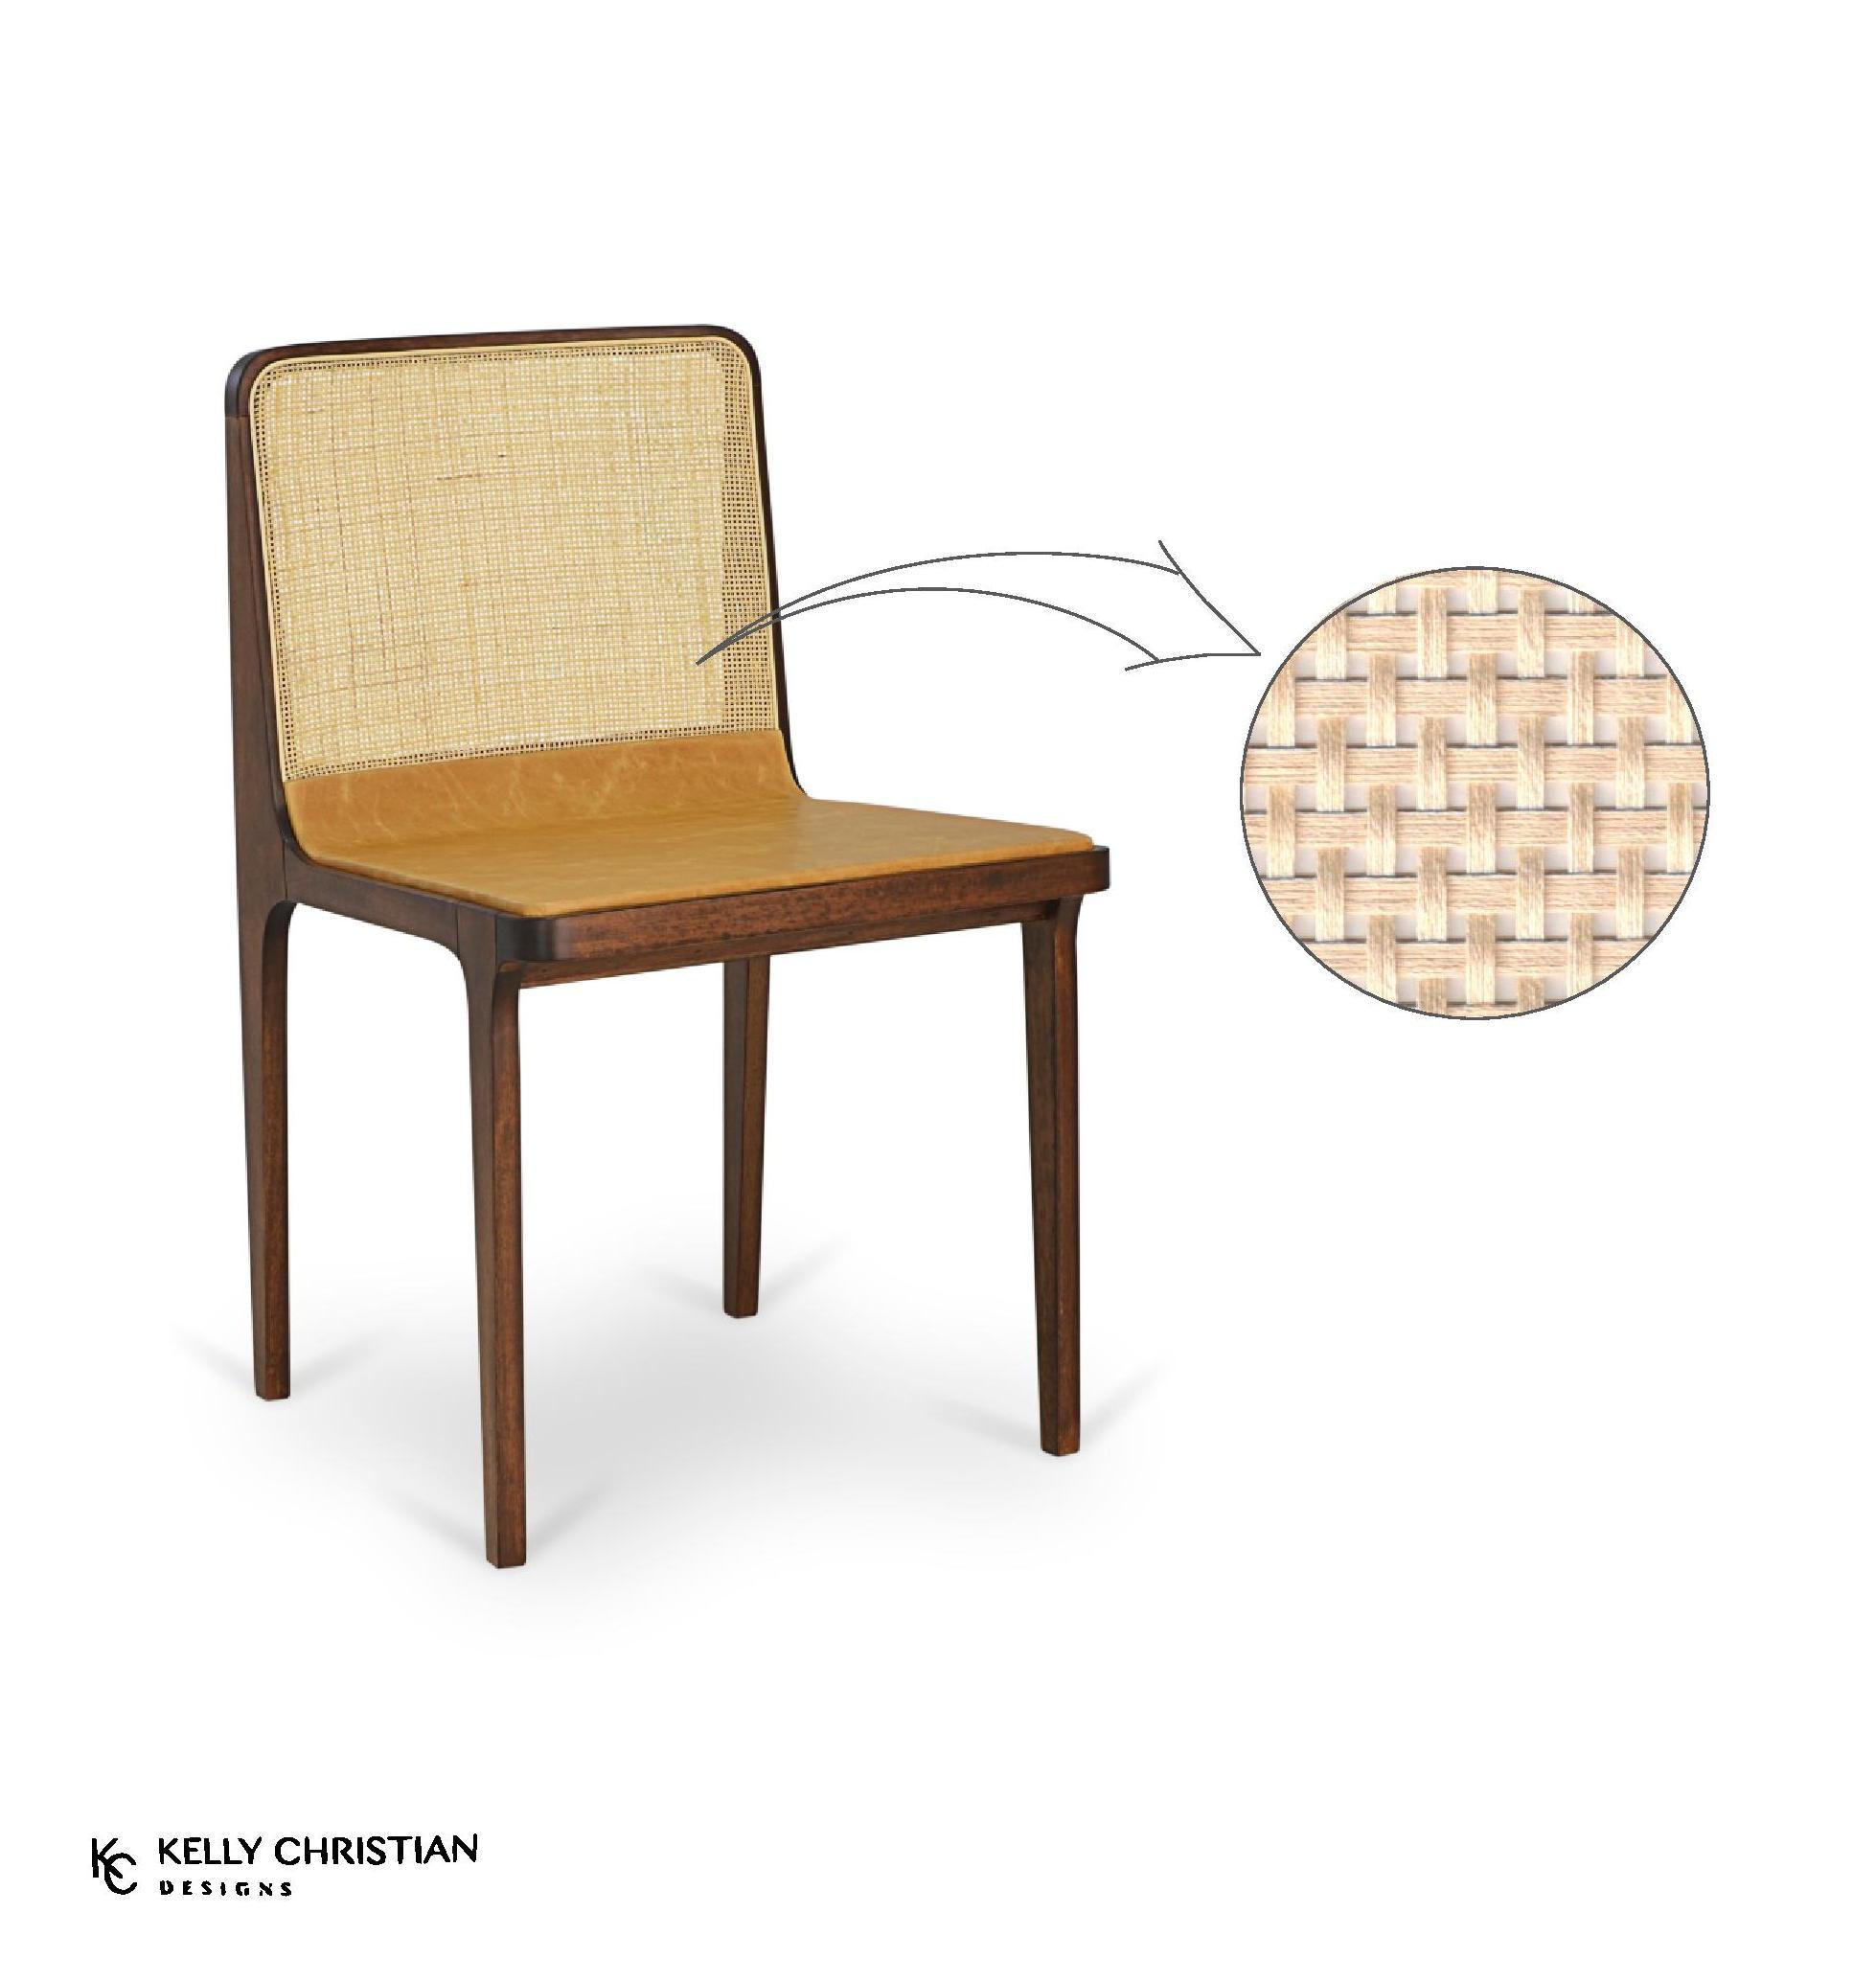 Oscar dining/side chair (back in rattan straw) by Beto & Tuti - Kelly Christian Designs